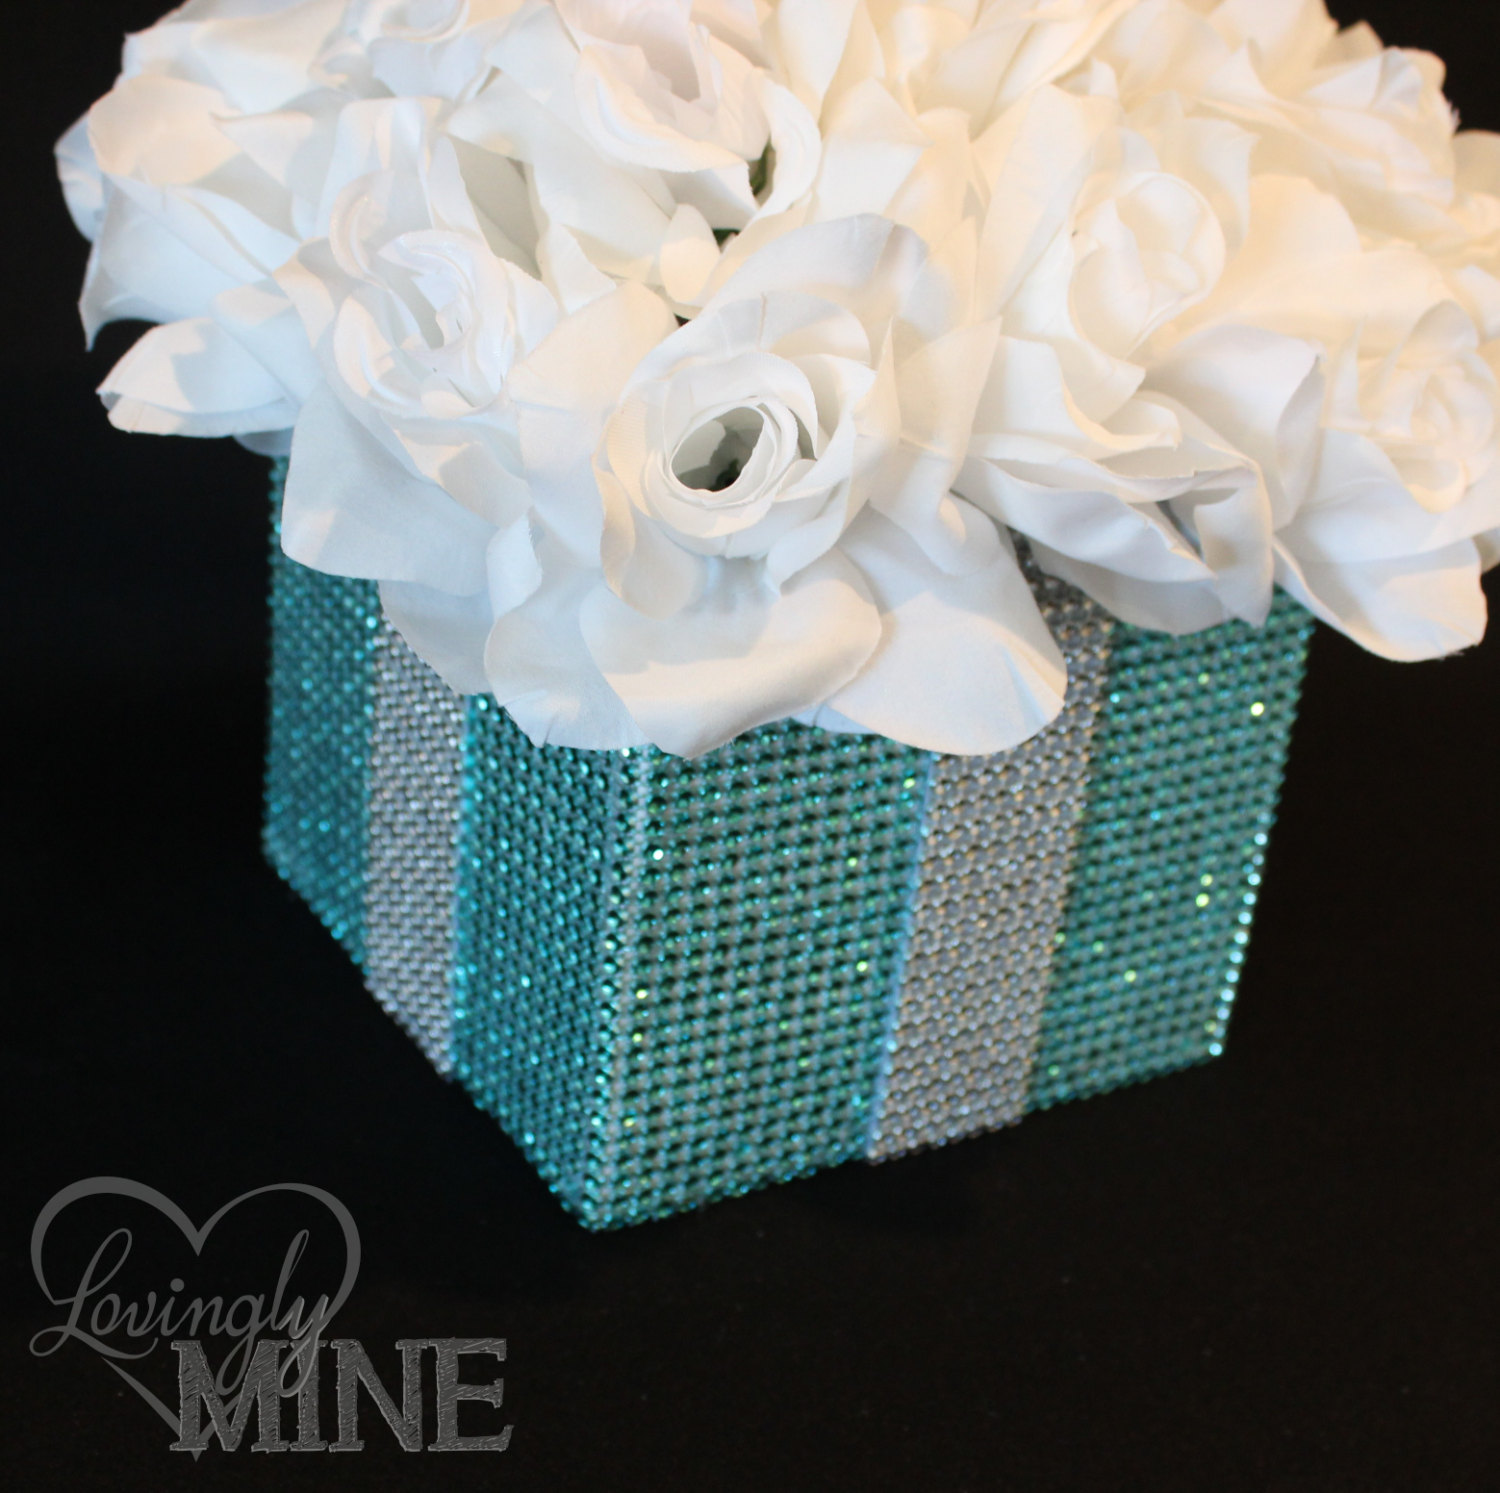 Centerpiece Tiffany Co Inspired Bling Box With White Silk Roses Tiffany Blue And White Medi Blue Wedding Centerpieces Tiffany Blue Party Tiffany Wedding